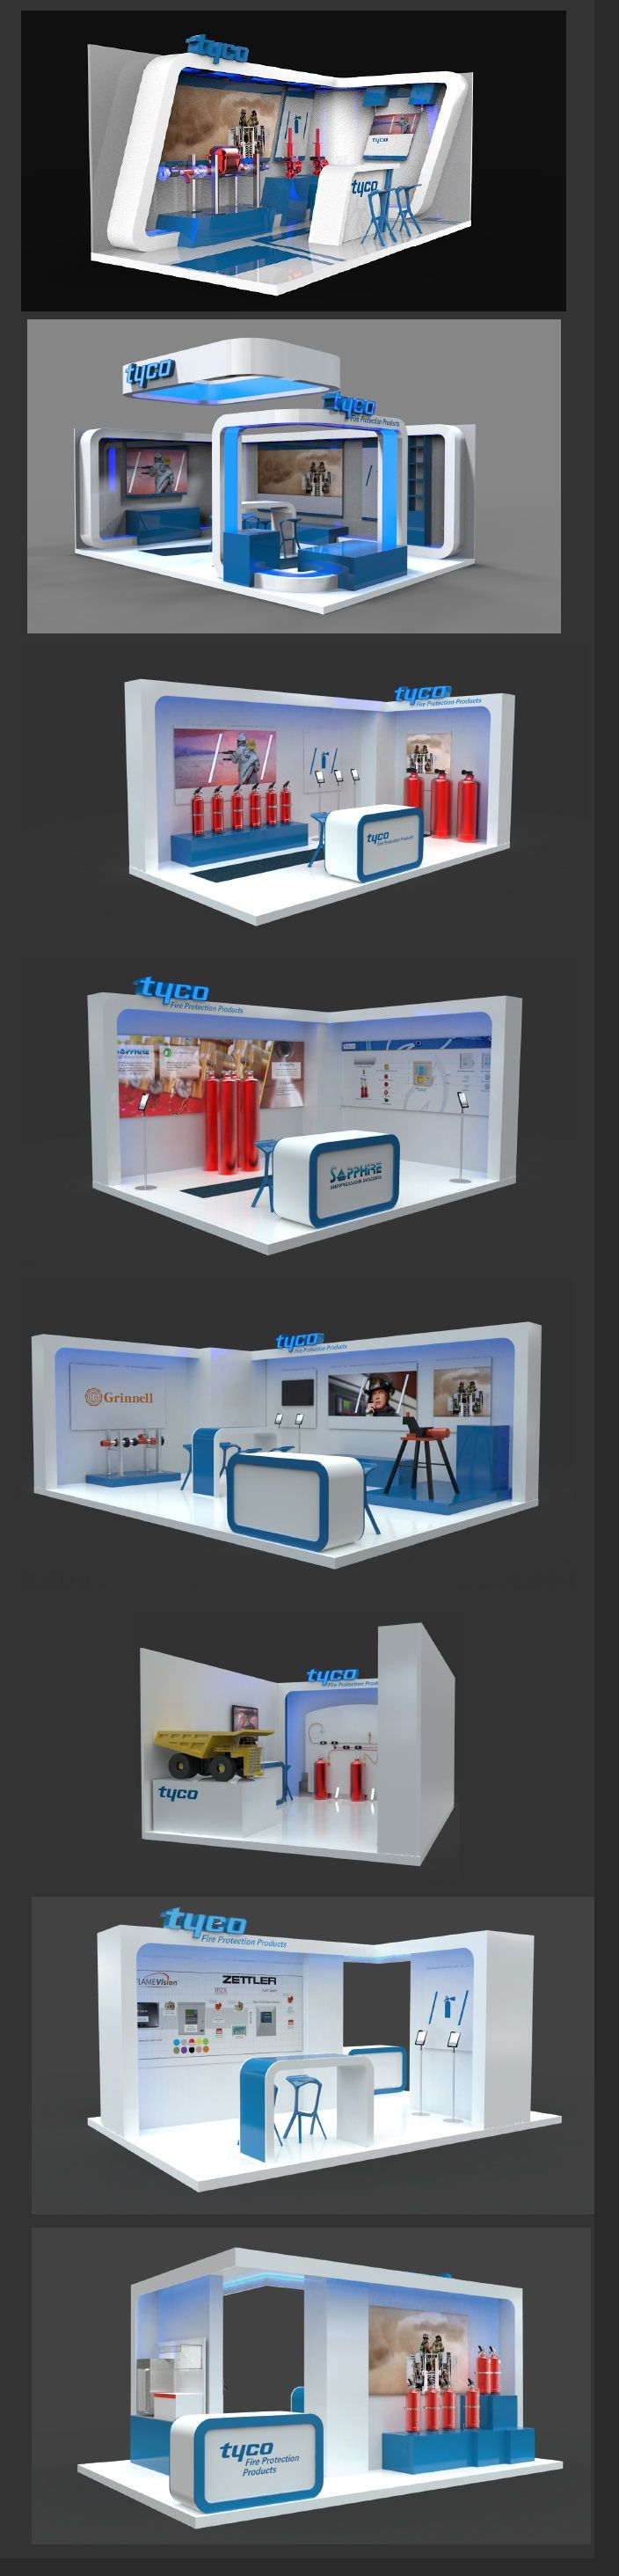 exhibit design artica - Artica Designs